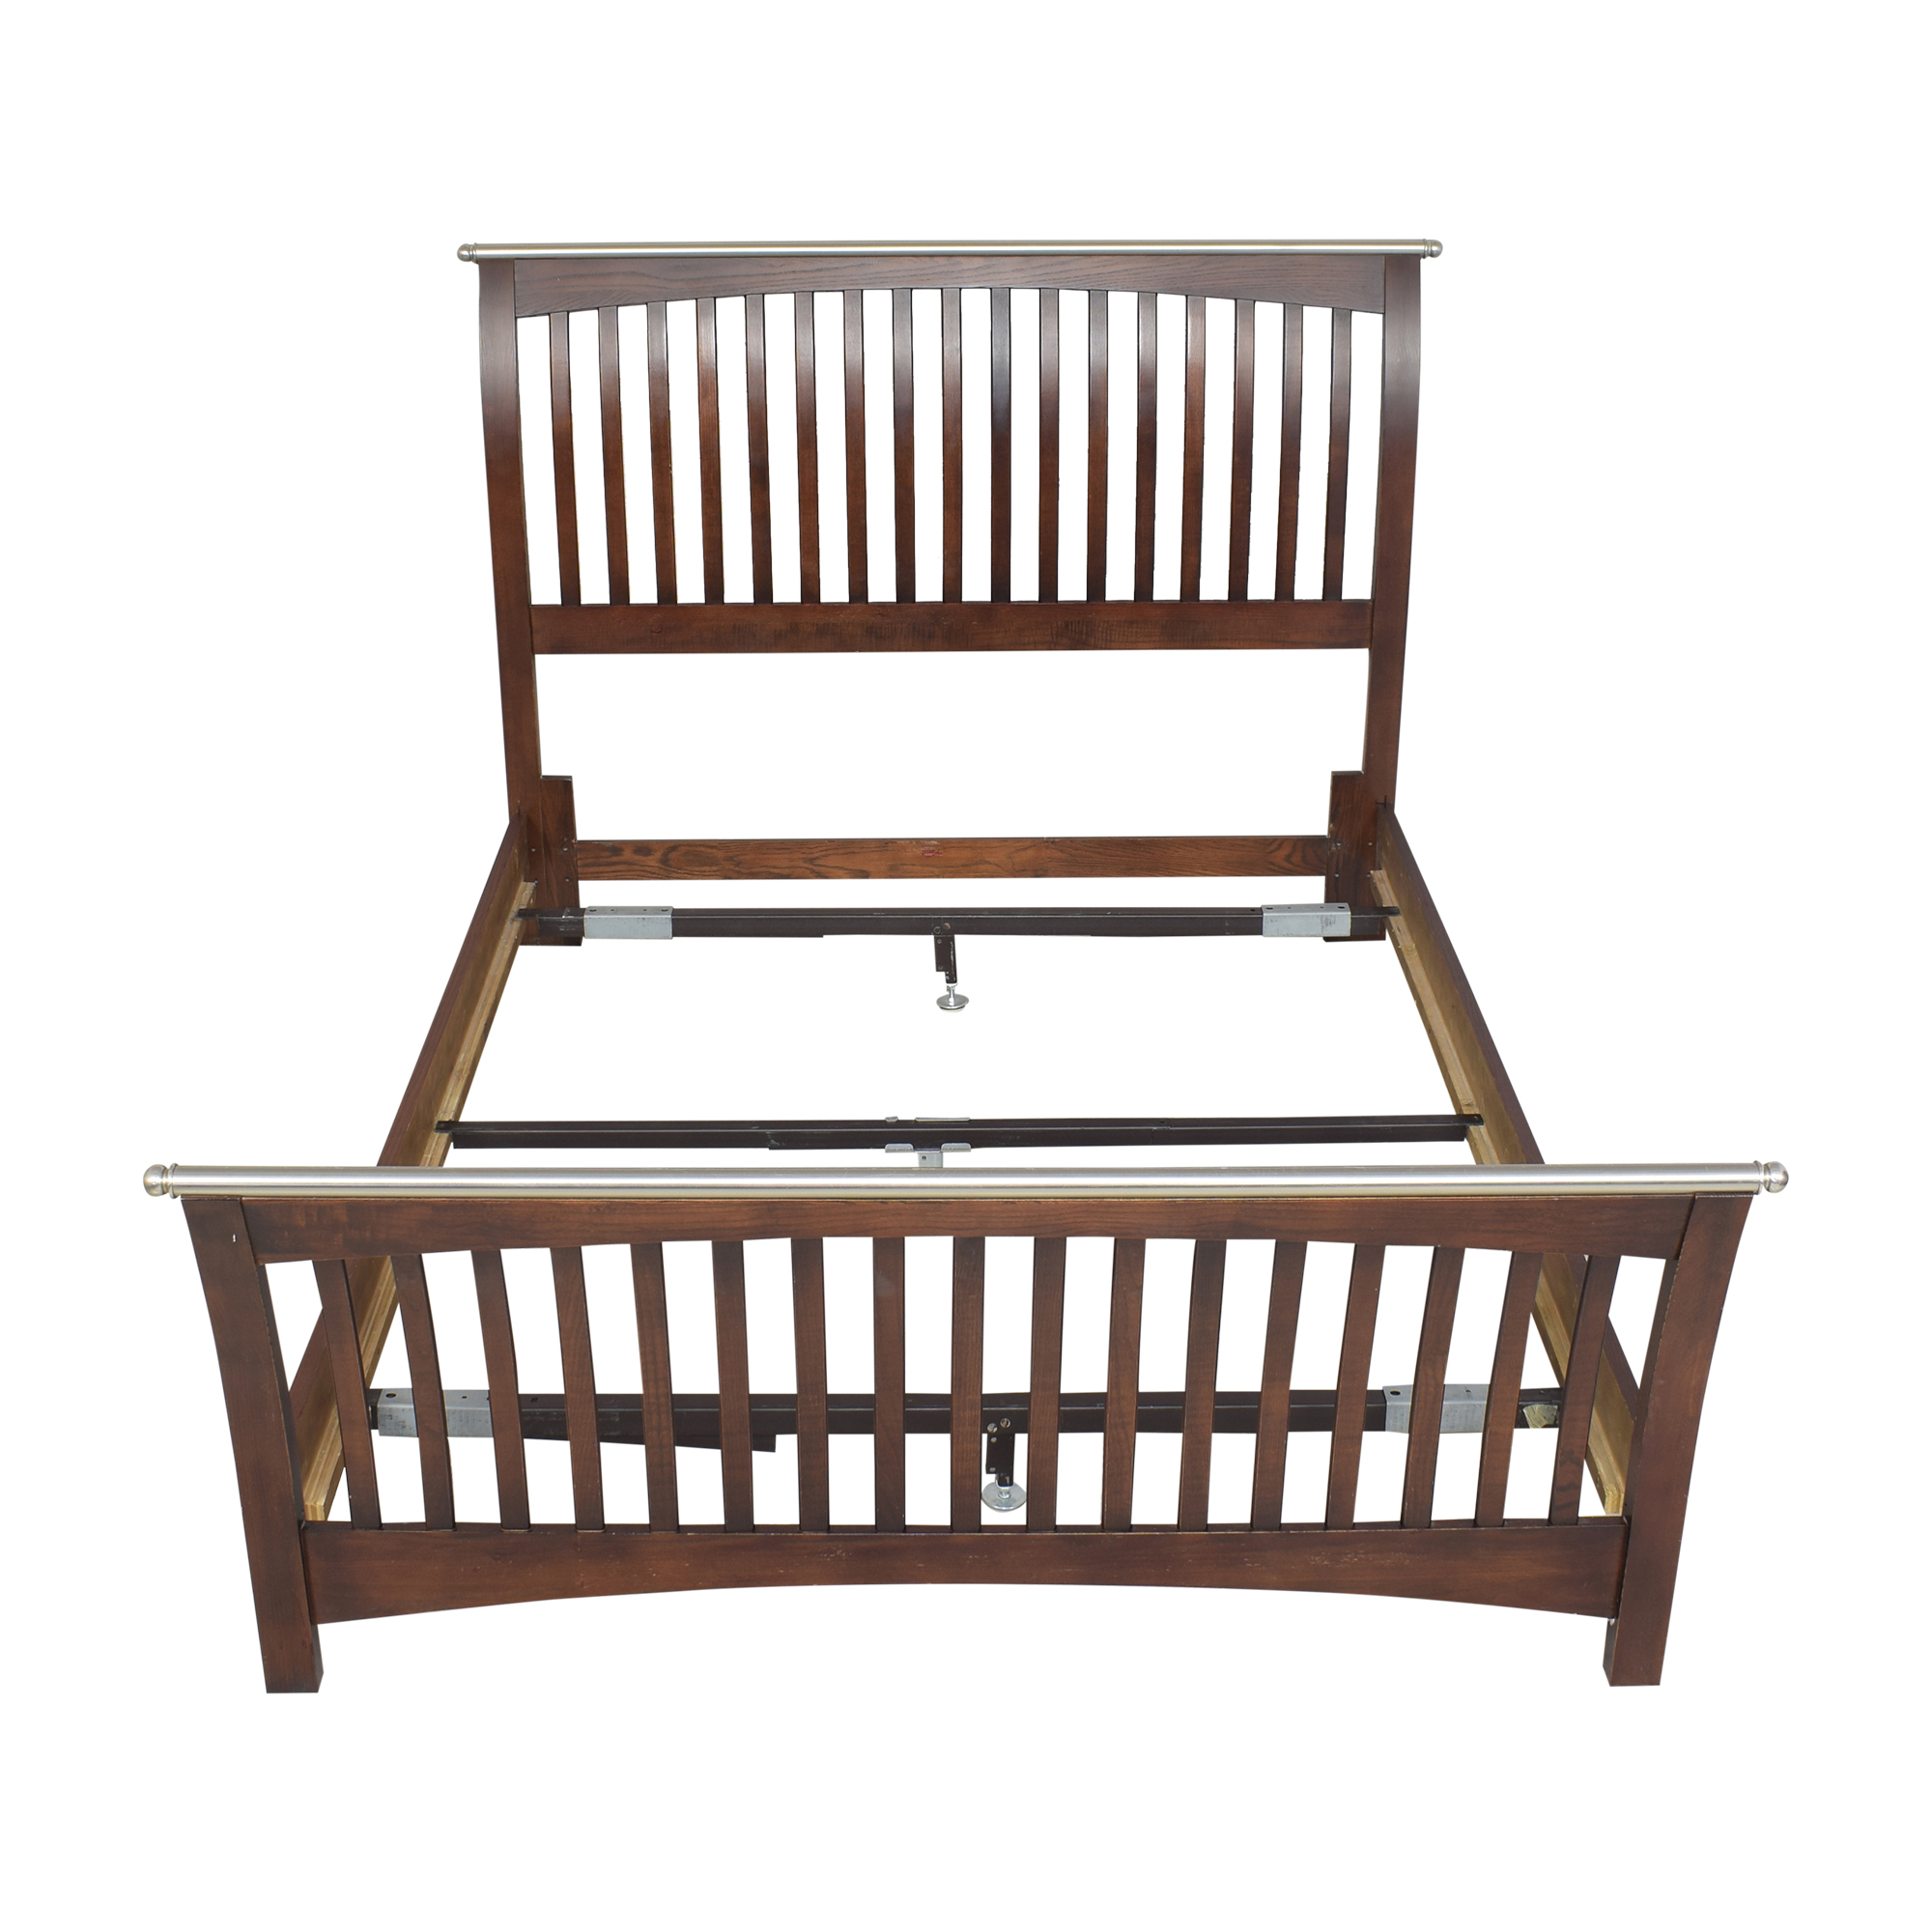 Thomasville Thomasville Mission-Style Queen Bed used